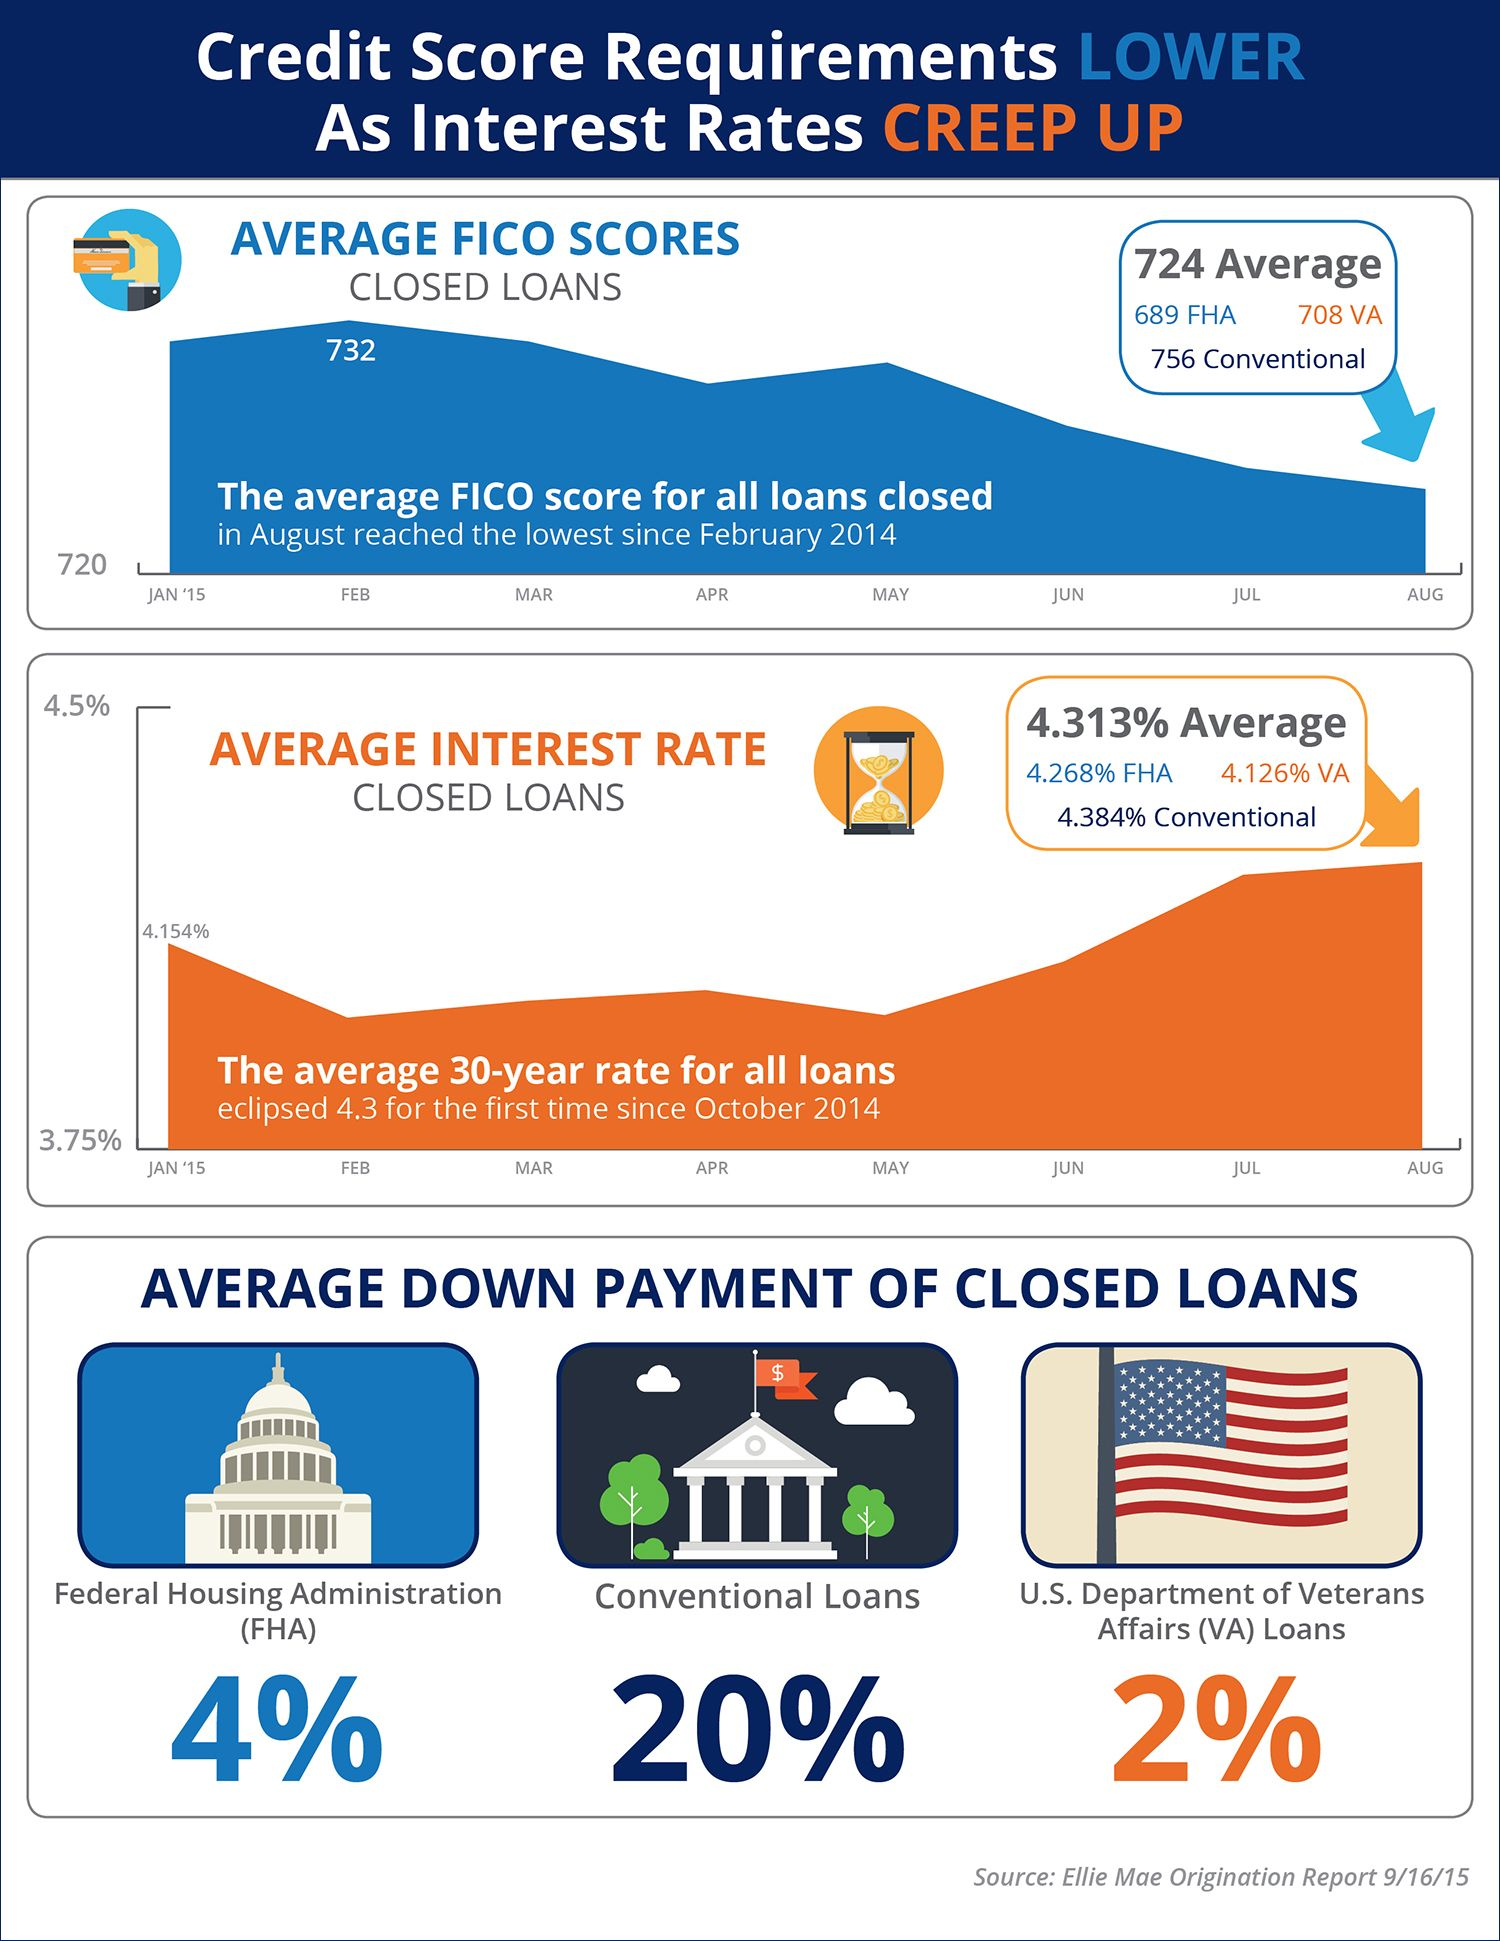 Credit Score Requirements Lower As Interest Rates Creep Up